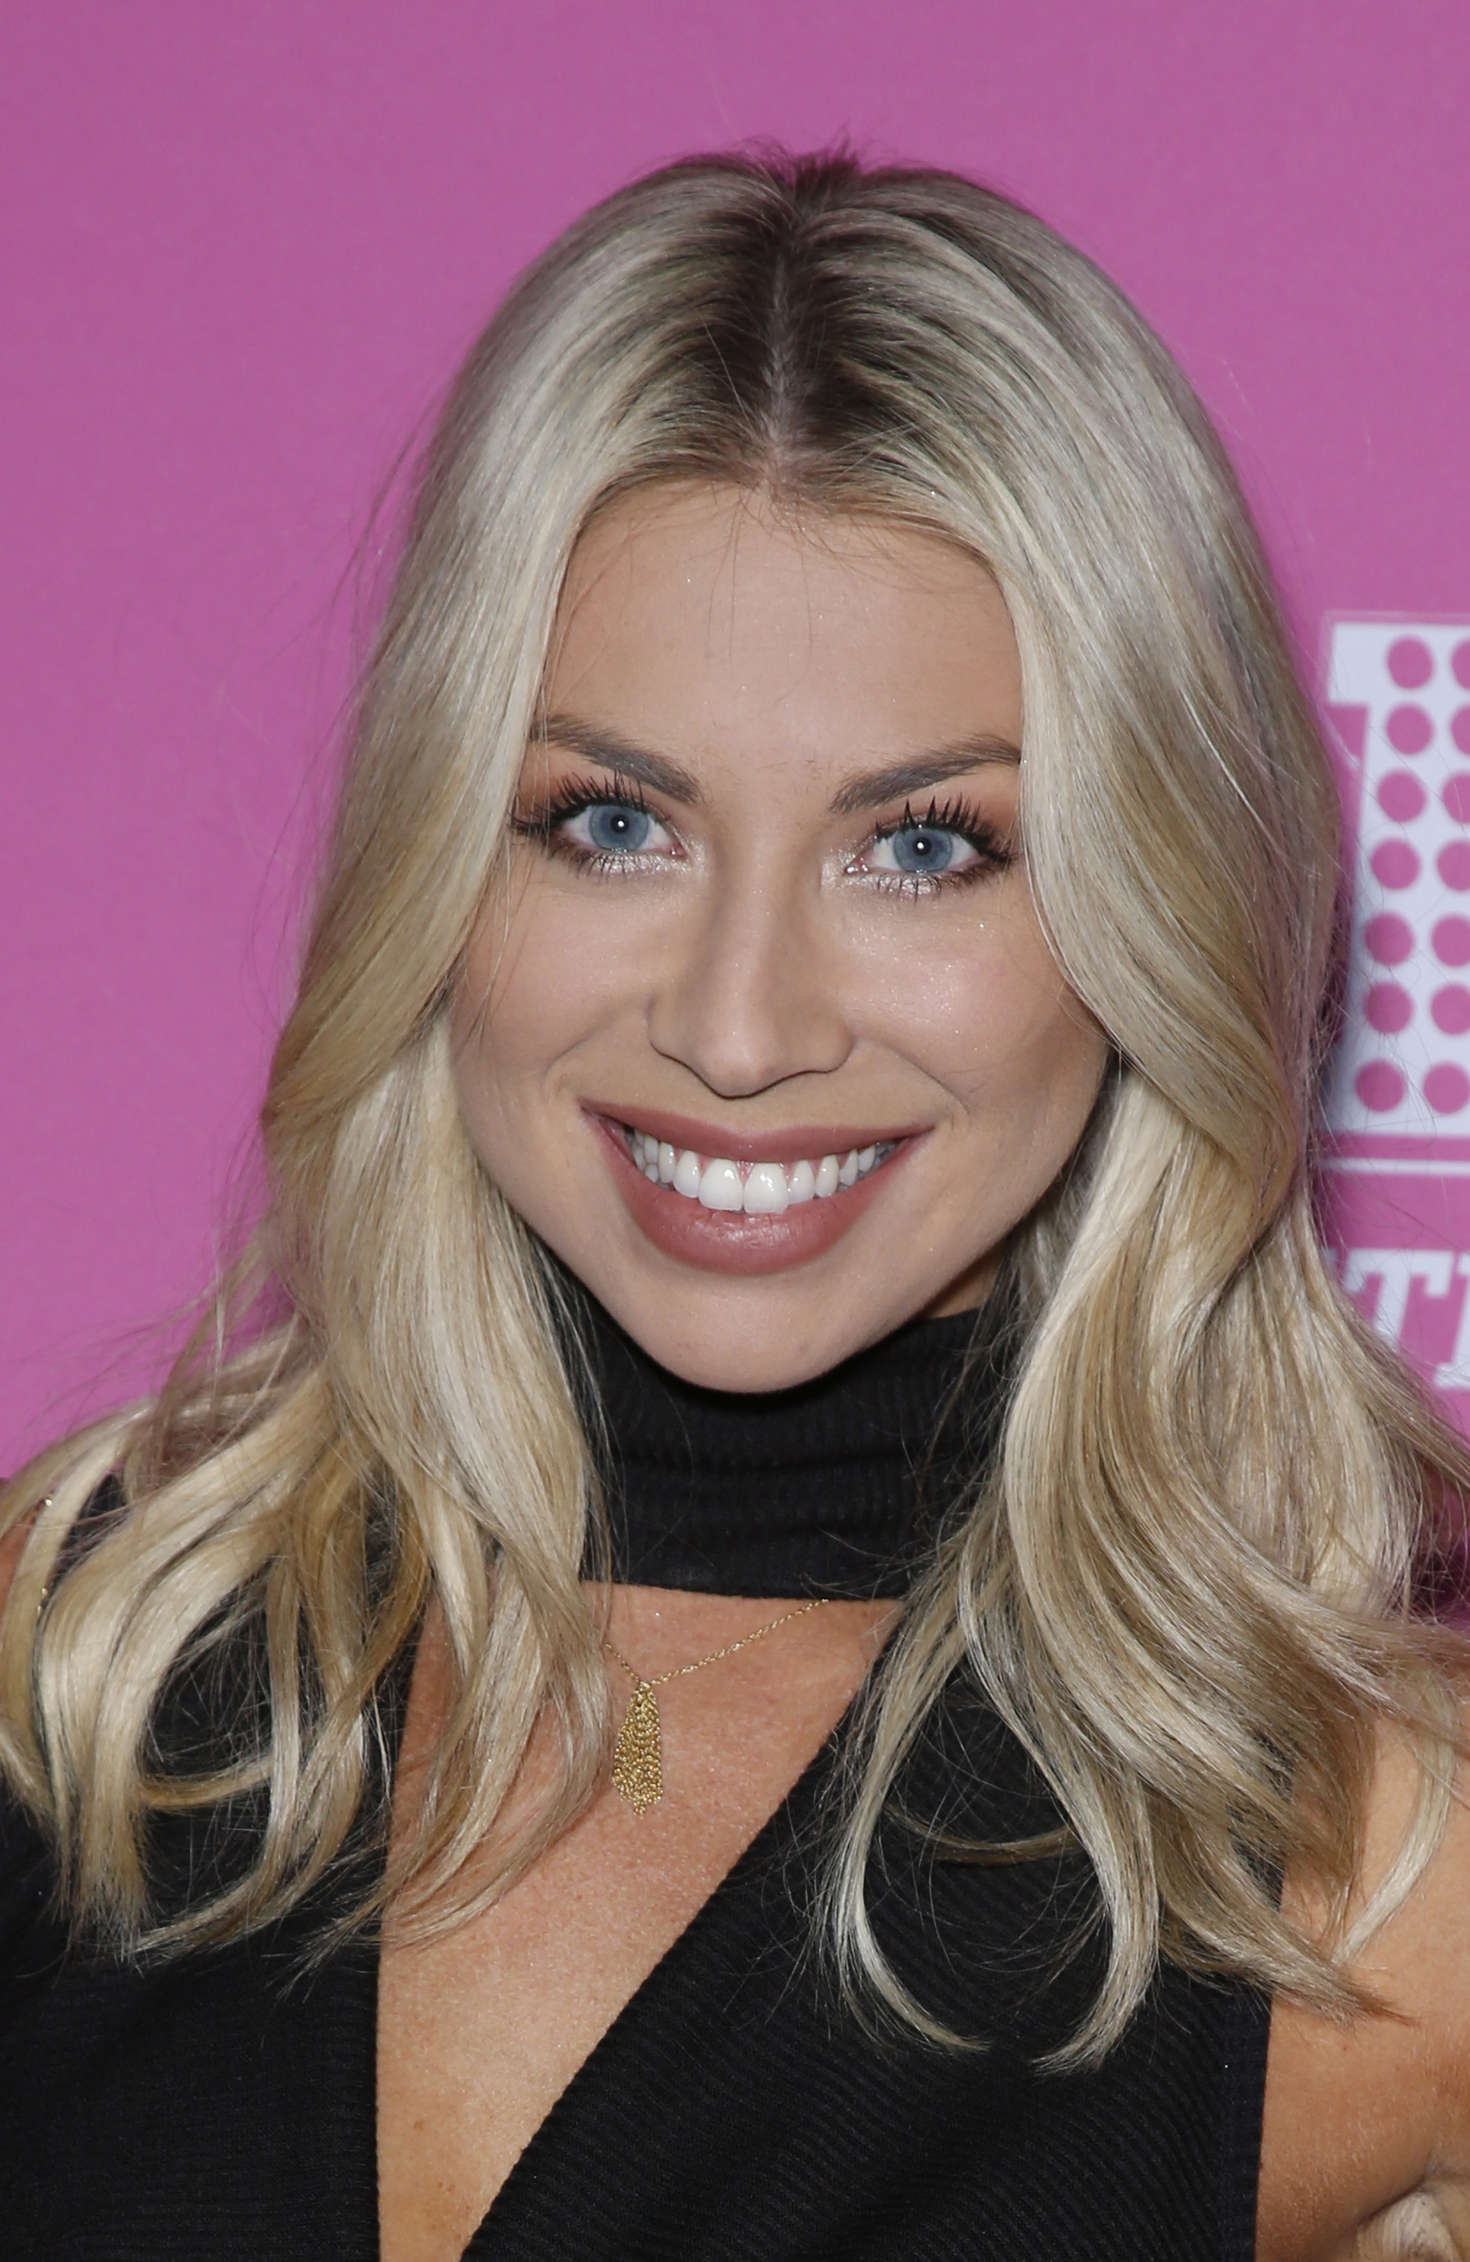 Stassi Schroeder Party to DJ Mike Shay at Ghostbar Dayclub inside Palms in Las Vegas